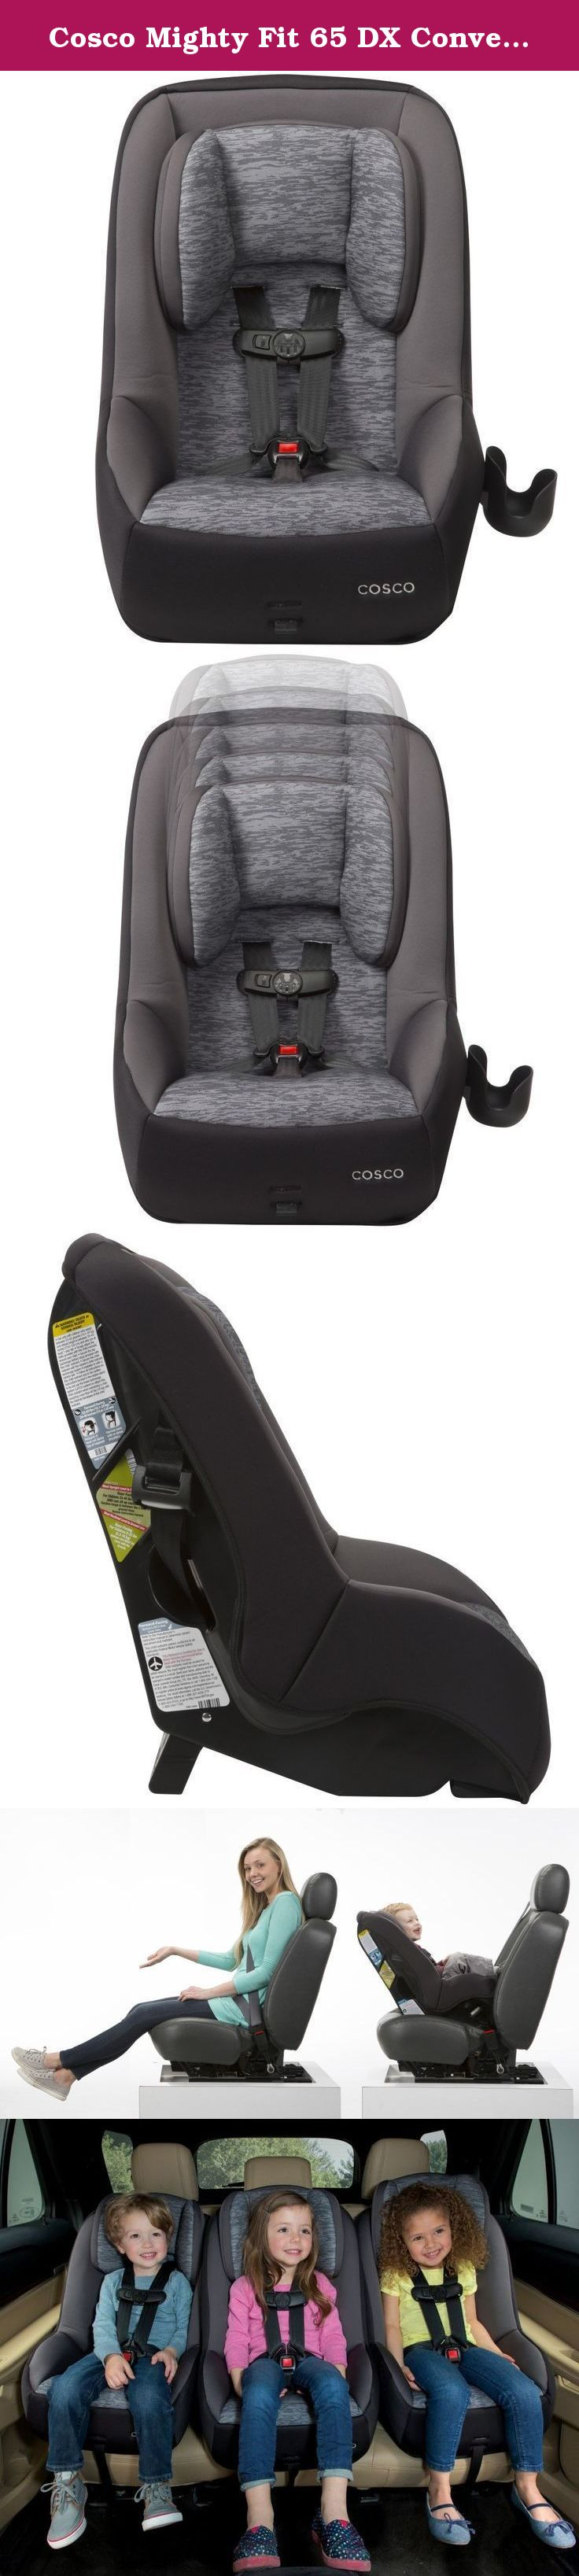 Cosco Mighty Fit 65 Dx Convertible Car Seat Heather Onyx Gray Get The